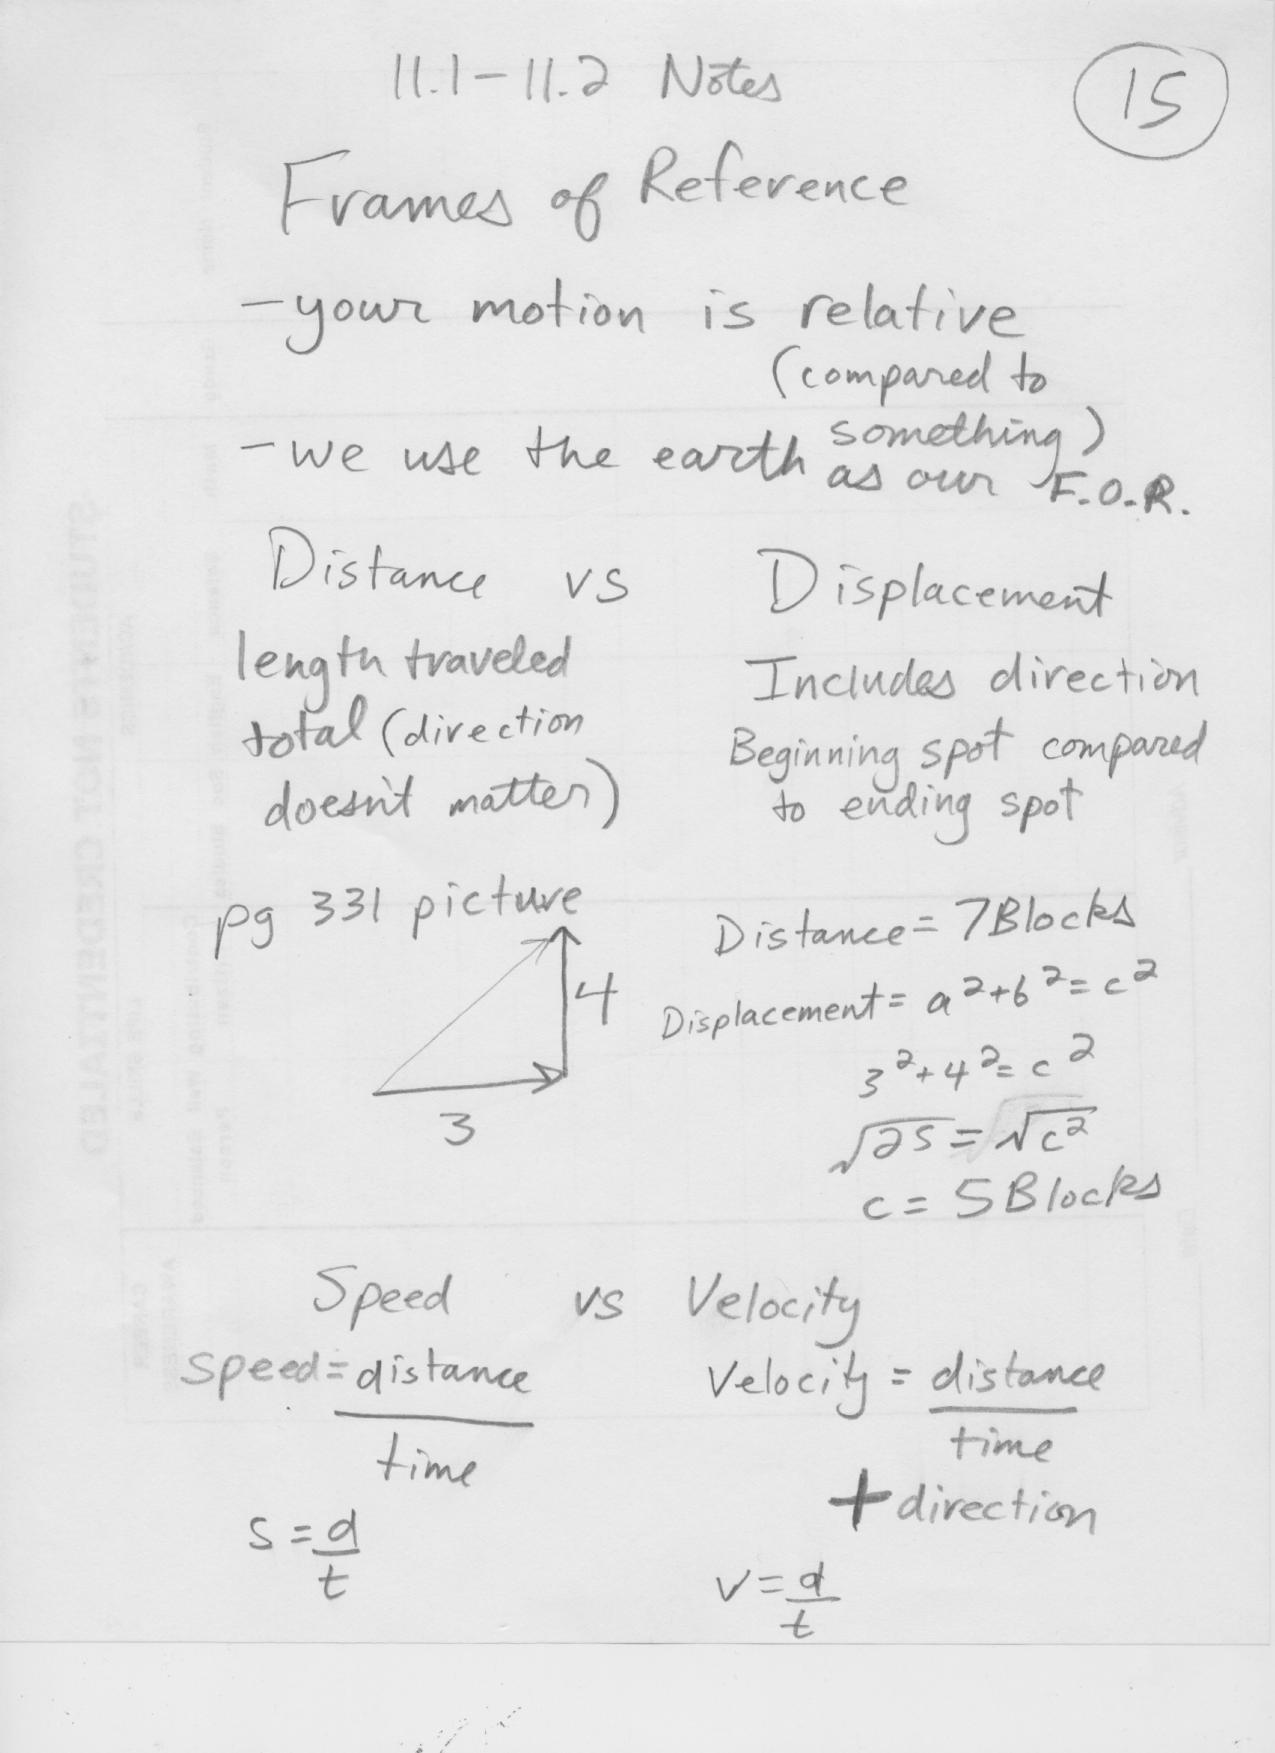 gilesc licensed for noncommercial use only Physics9 – Speed and Velocity Worksheet